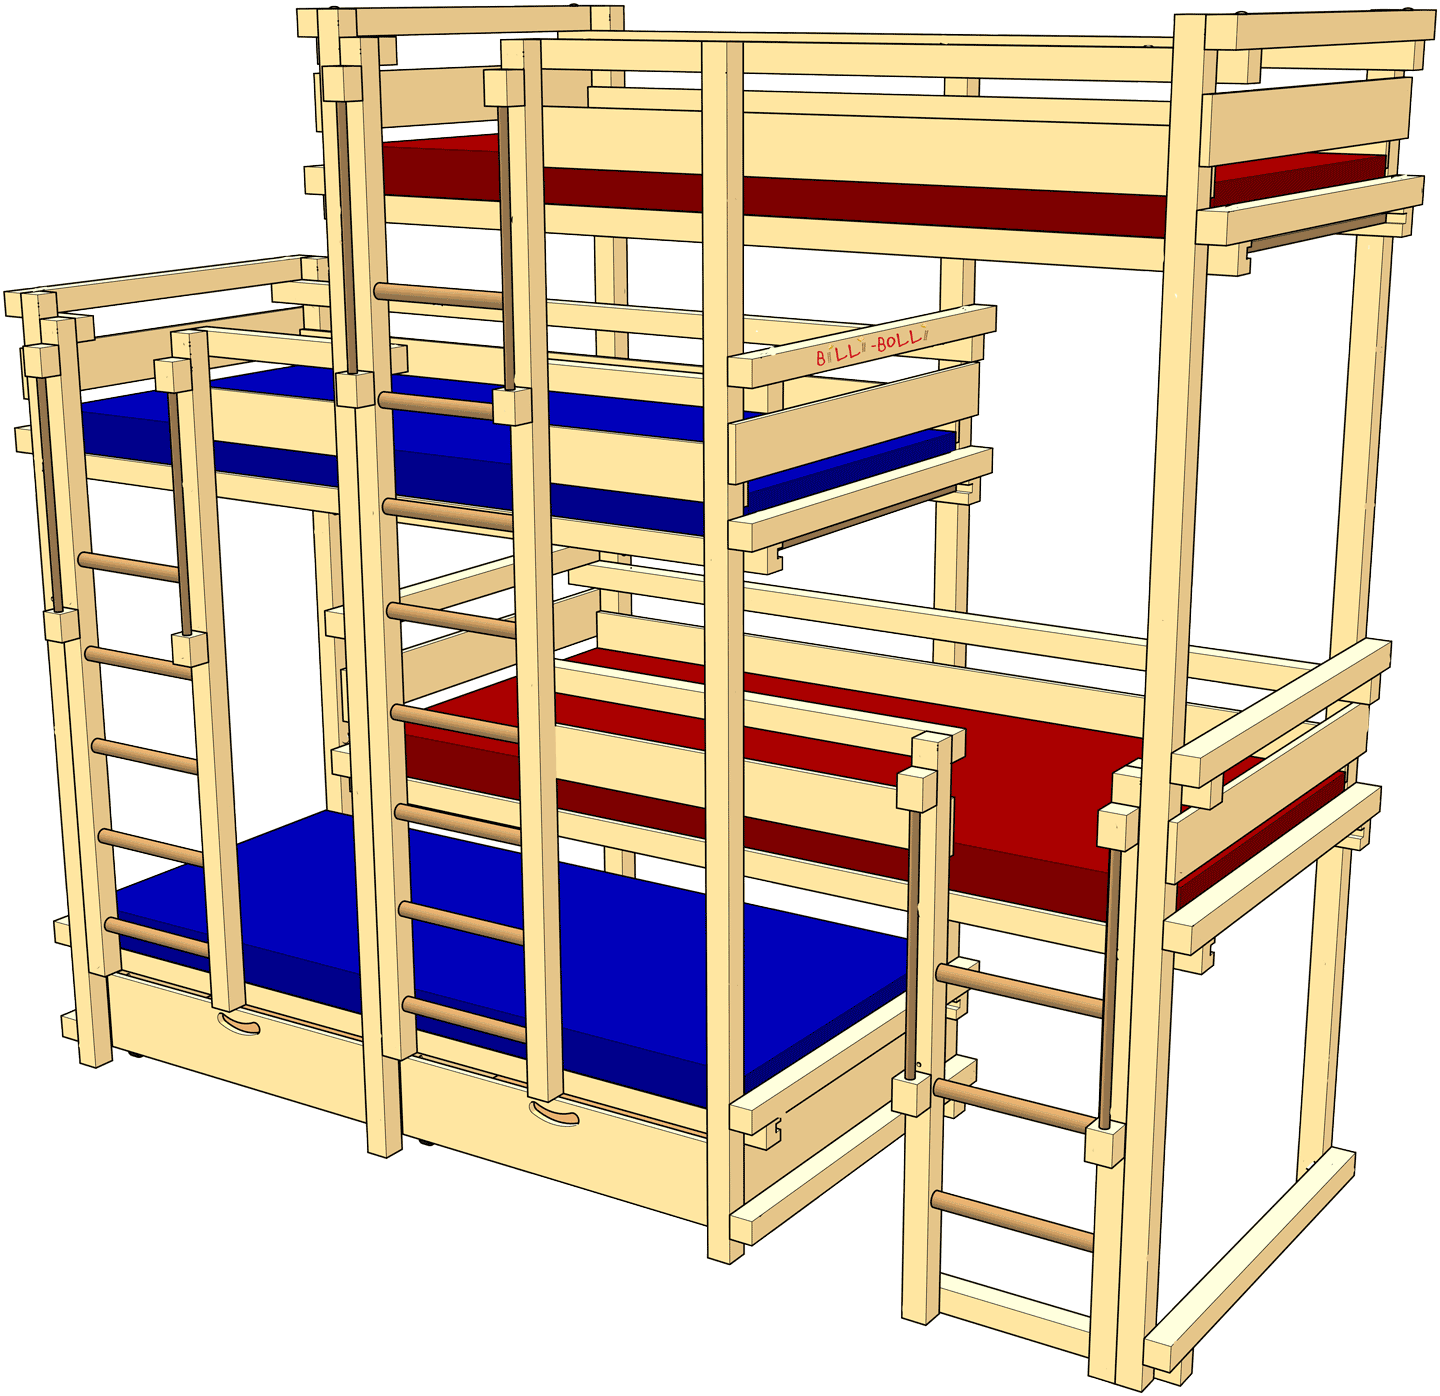 bed laterally staggered for four